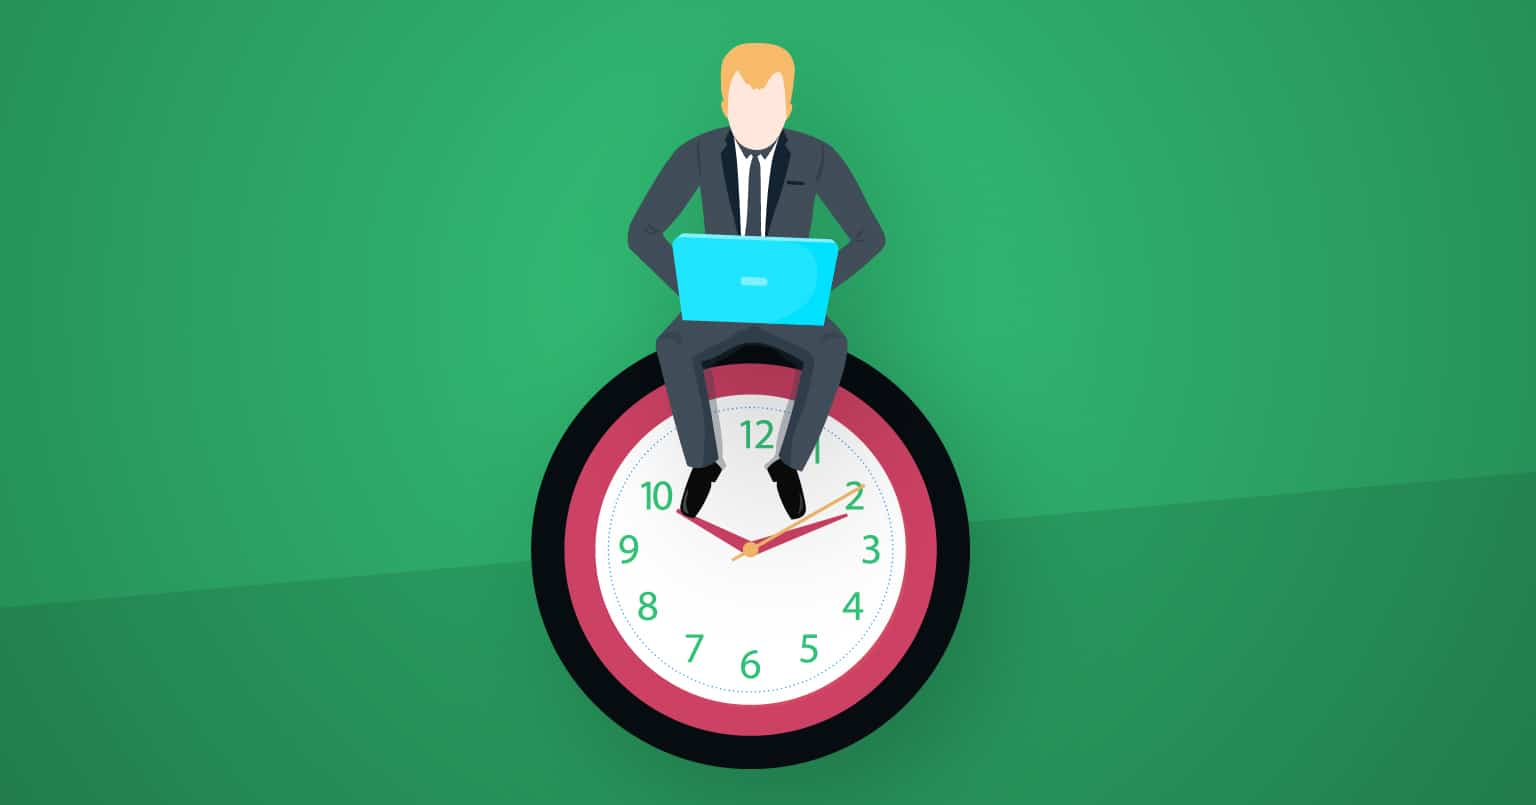 HR's 4 Biggest Wastes of Time